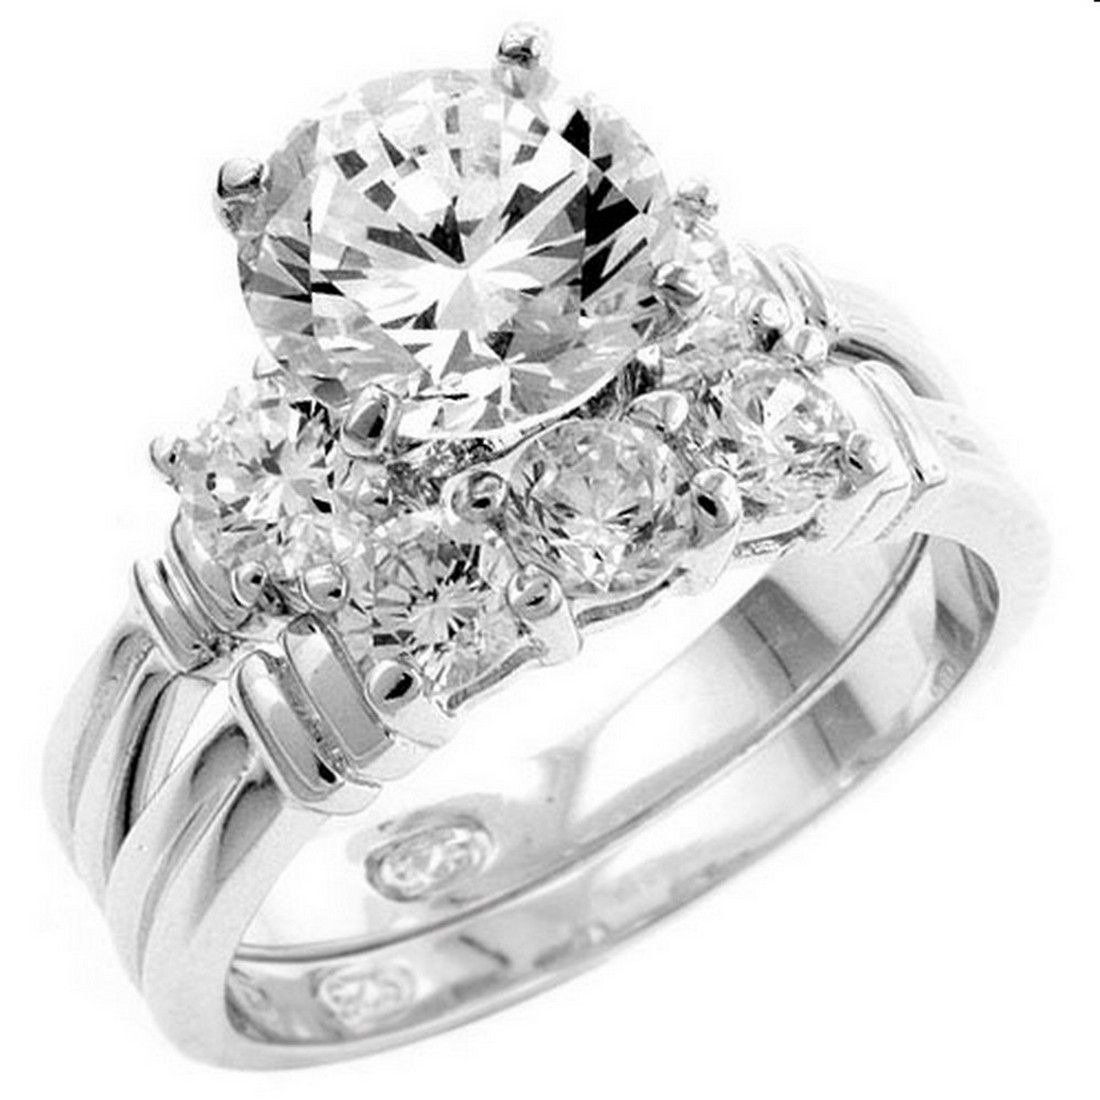 Fantastic beautiful expensive wedding rings photo the wedding weddingrings wedding engagement rings pinterest ring junglespirit